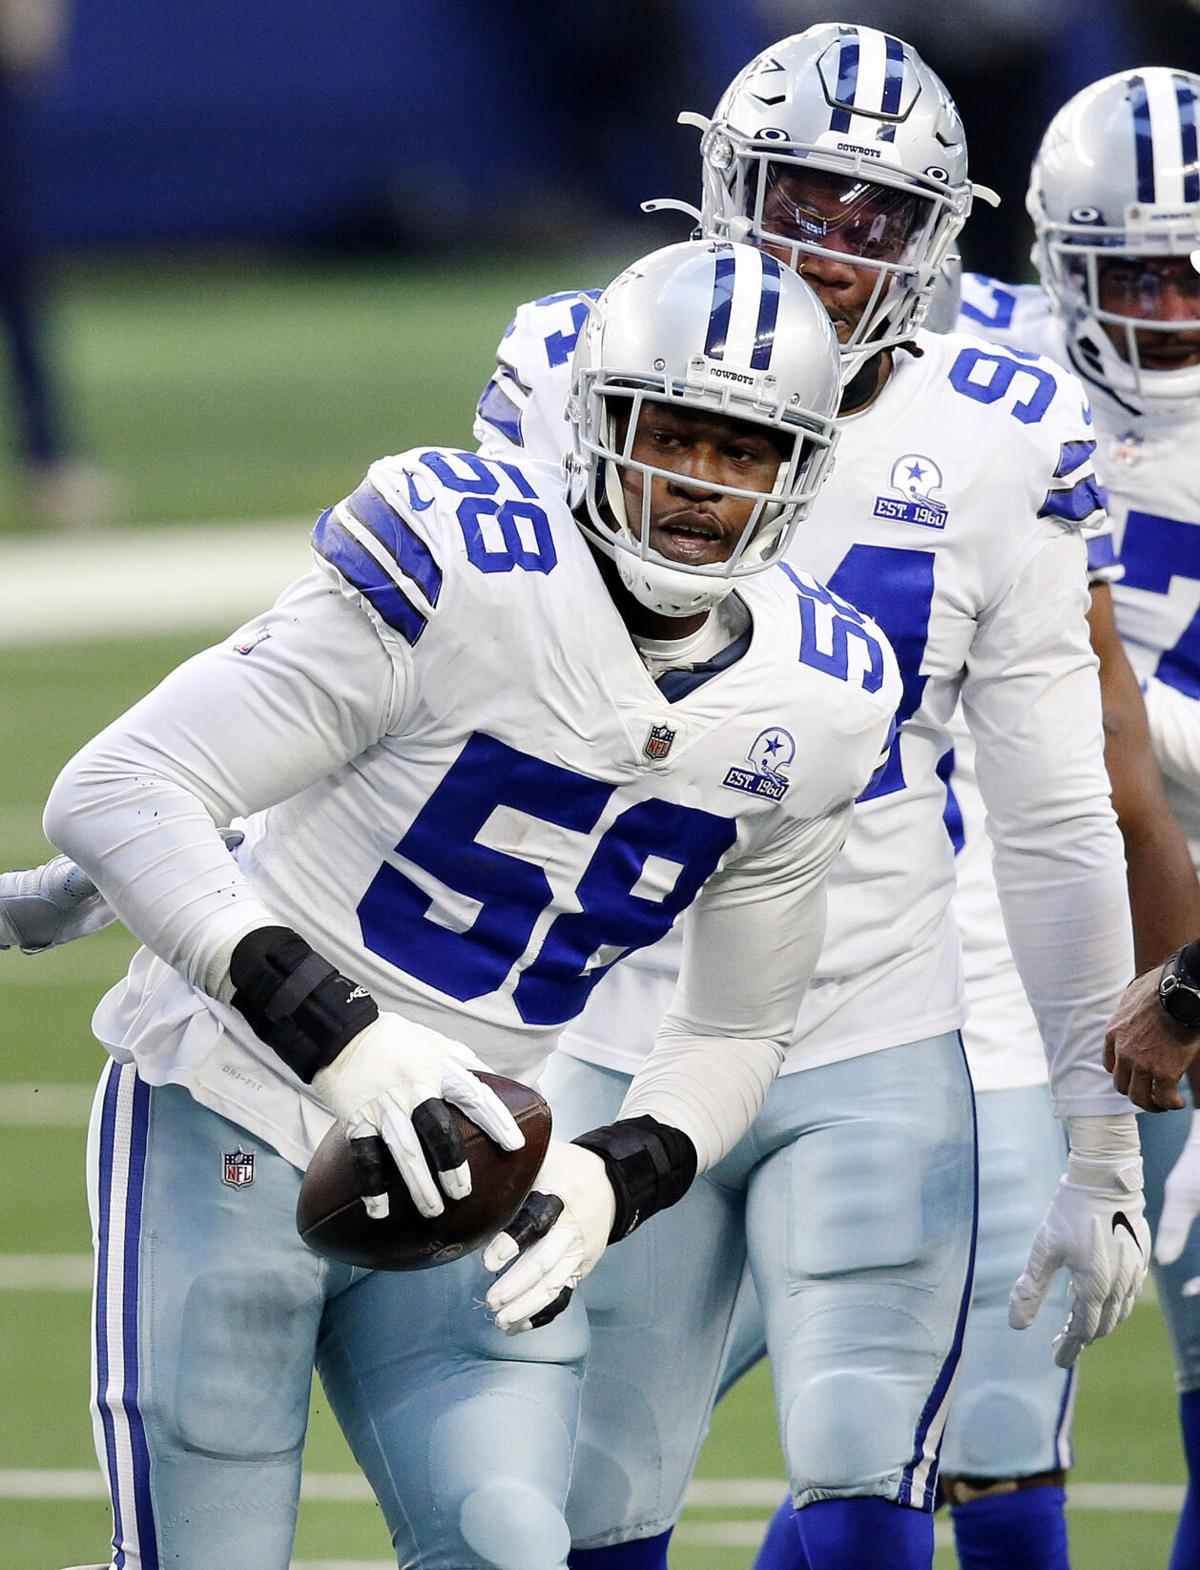 Dallas Cowboys defensive end Aldon Smith comes up with a first quarter fumble against the San Francisco 49 ers on Sunday, Dec. 20, 2020 at AT&T Stadium in Arlington, Texas.